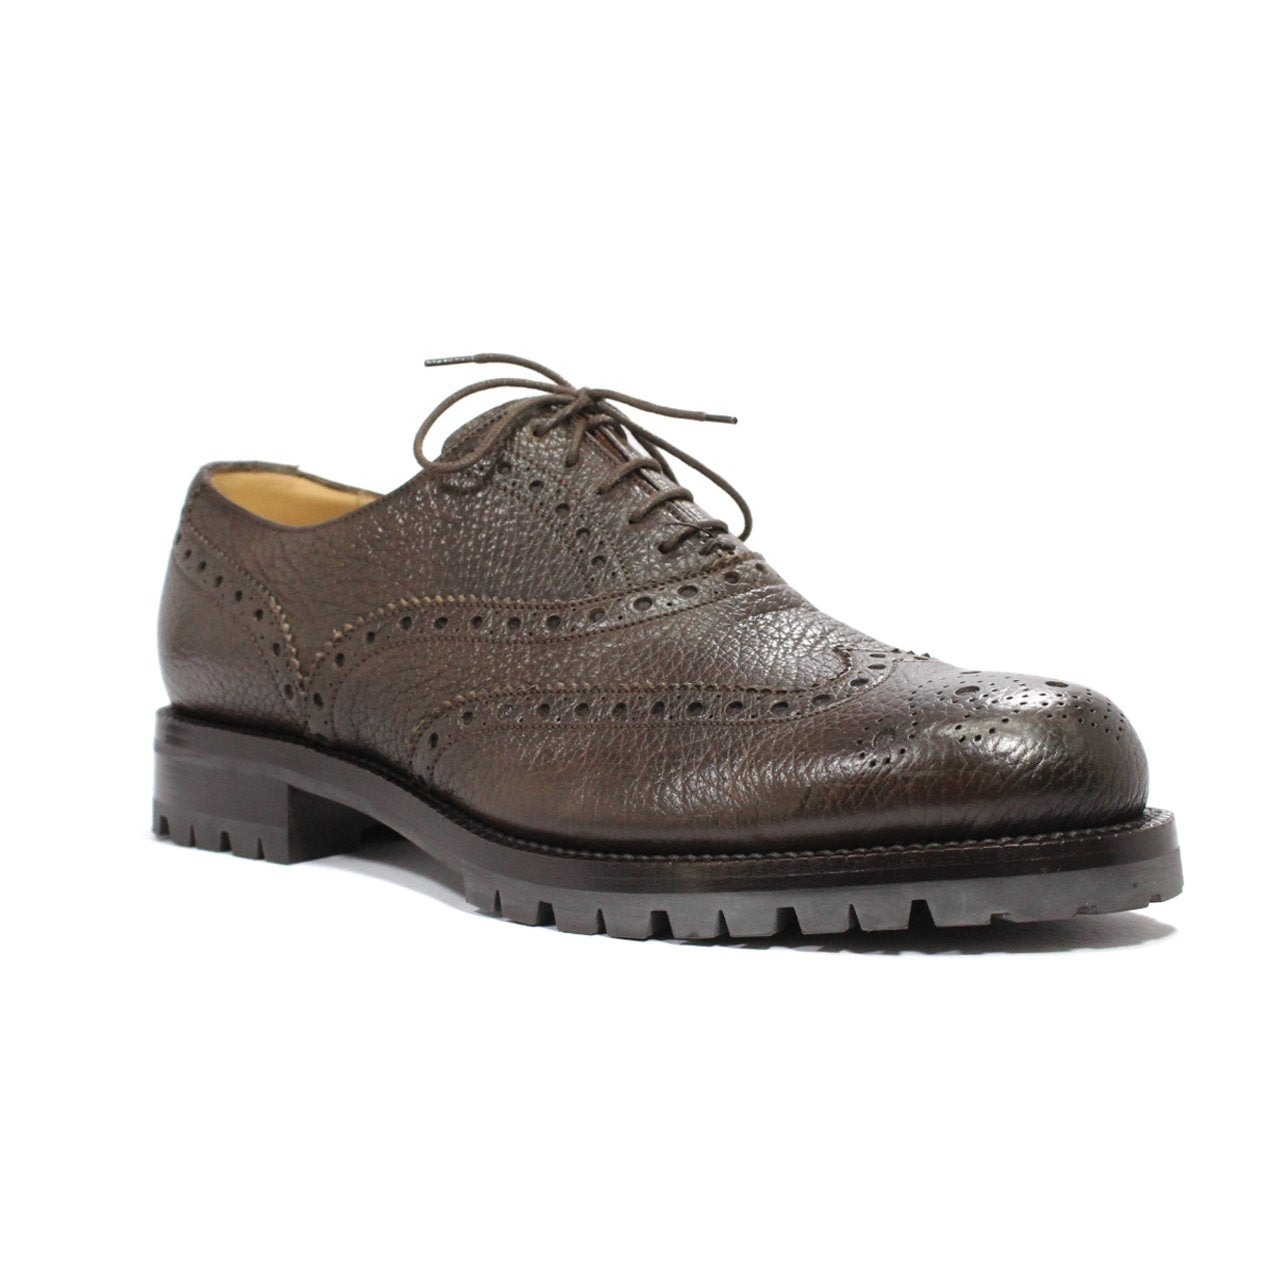 Bally Bindy Full-Brogue Men's Haindpainted Oxford Shoes